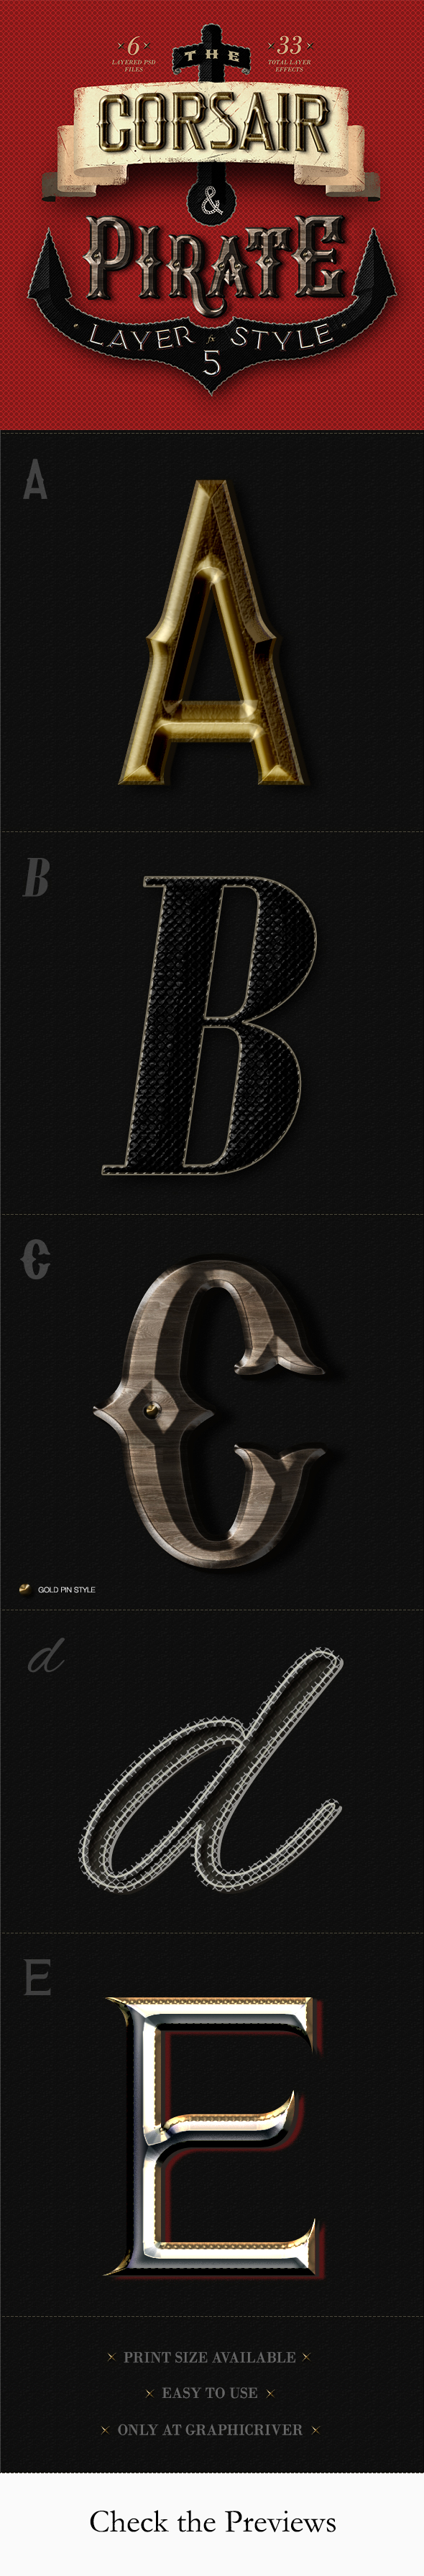 The Corsair and Pirate Photoshop Text Effect - Text Effects Actions